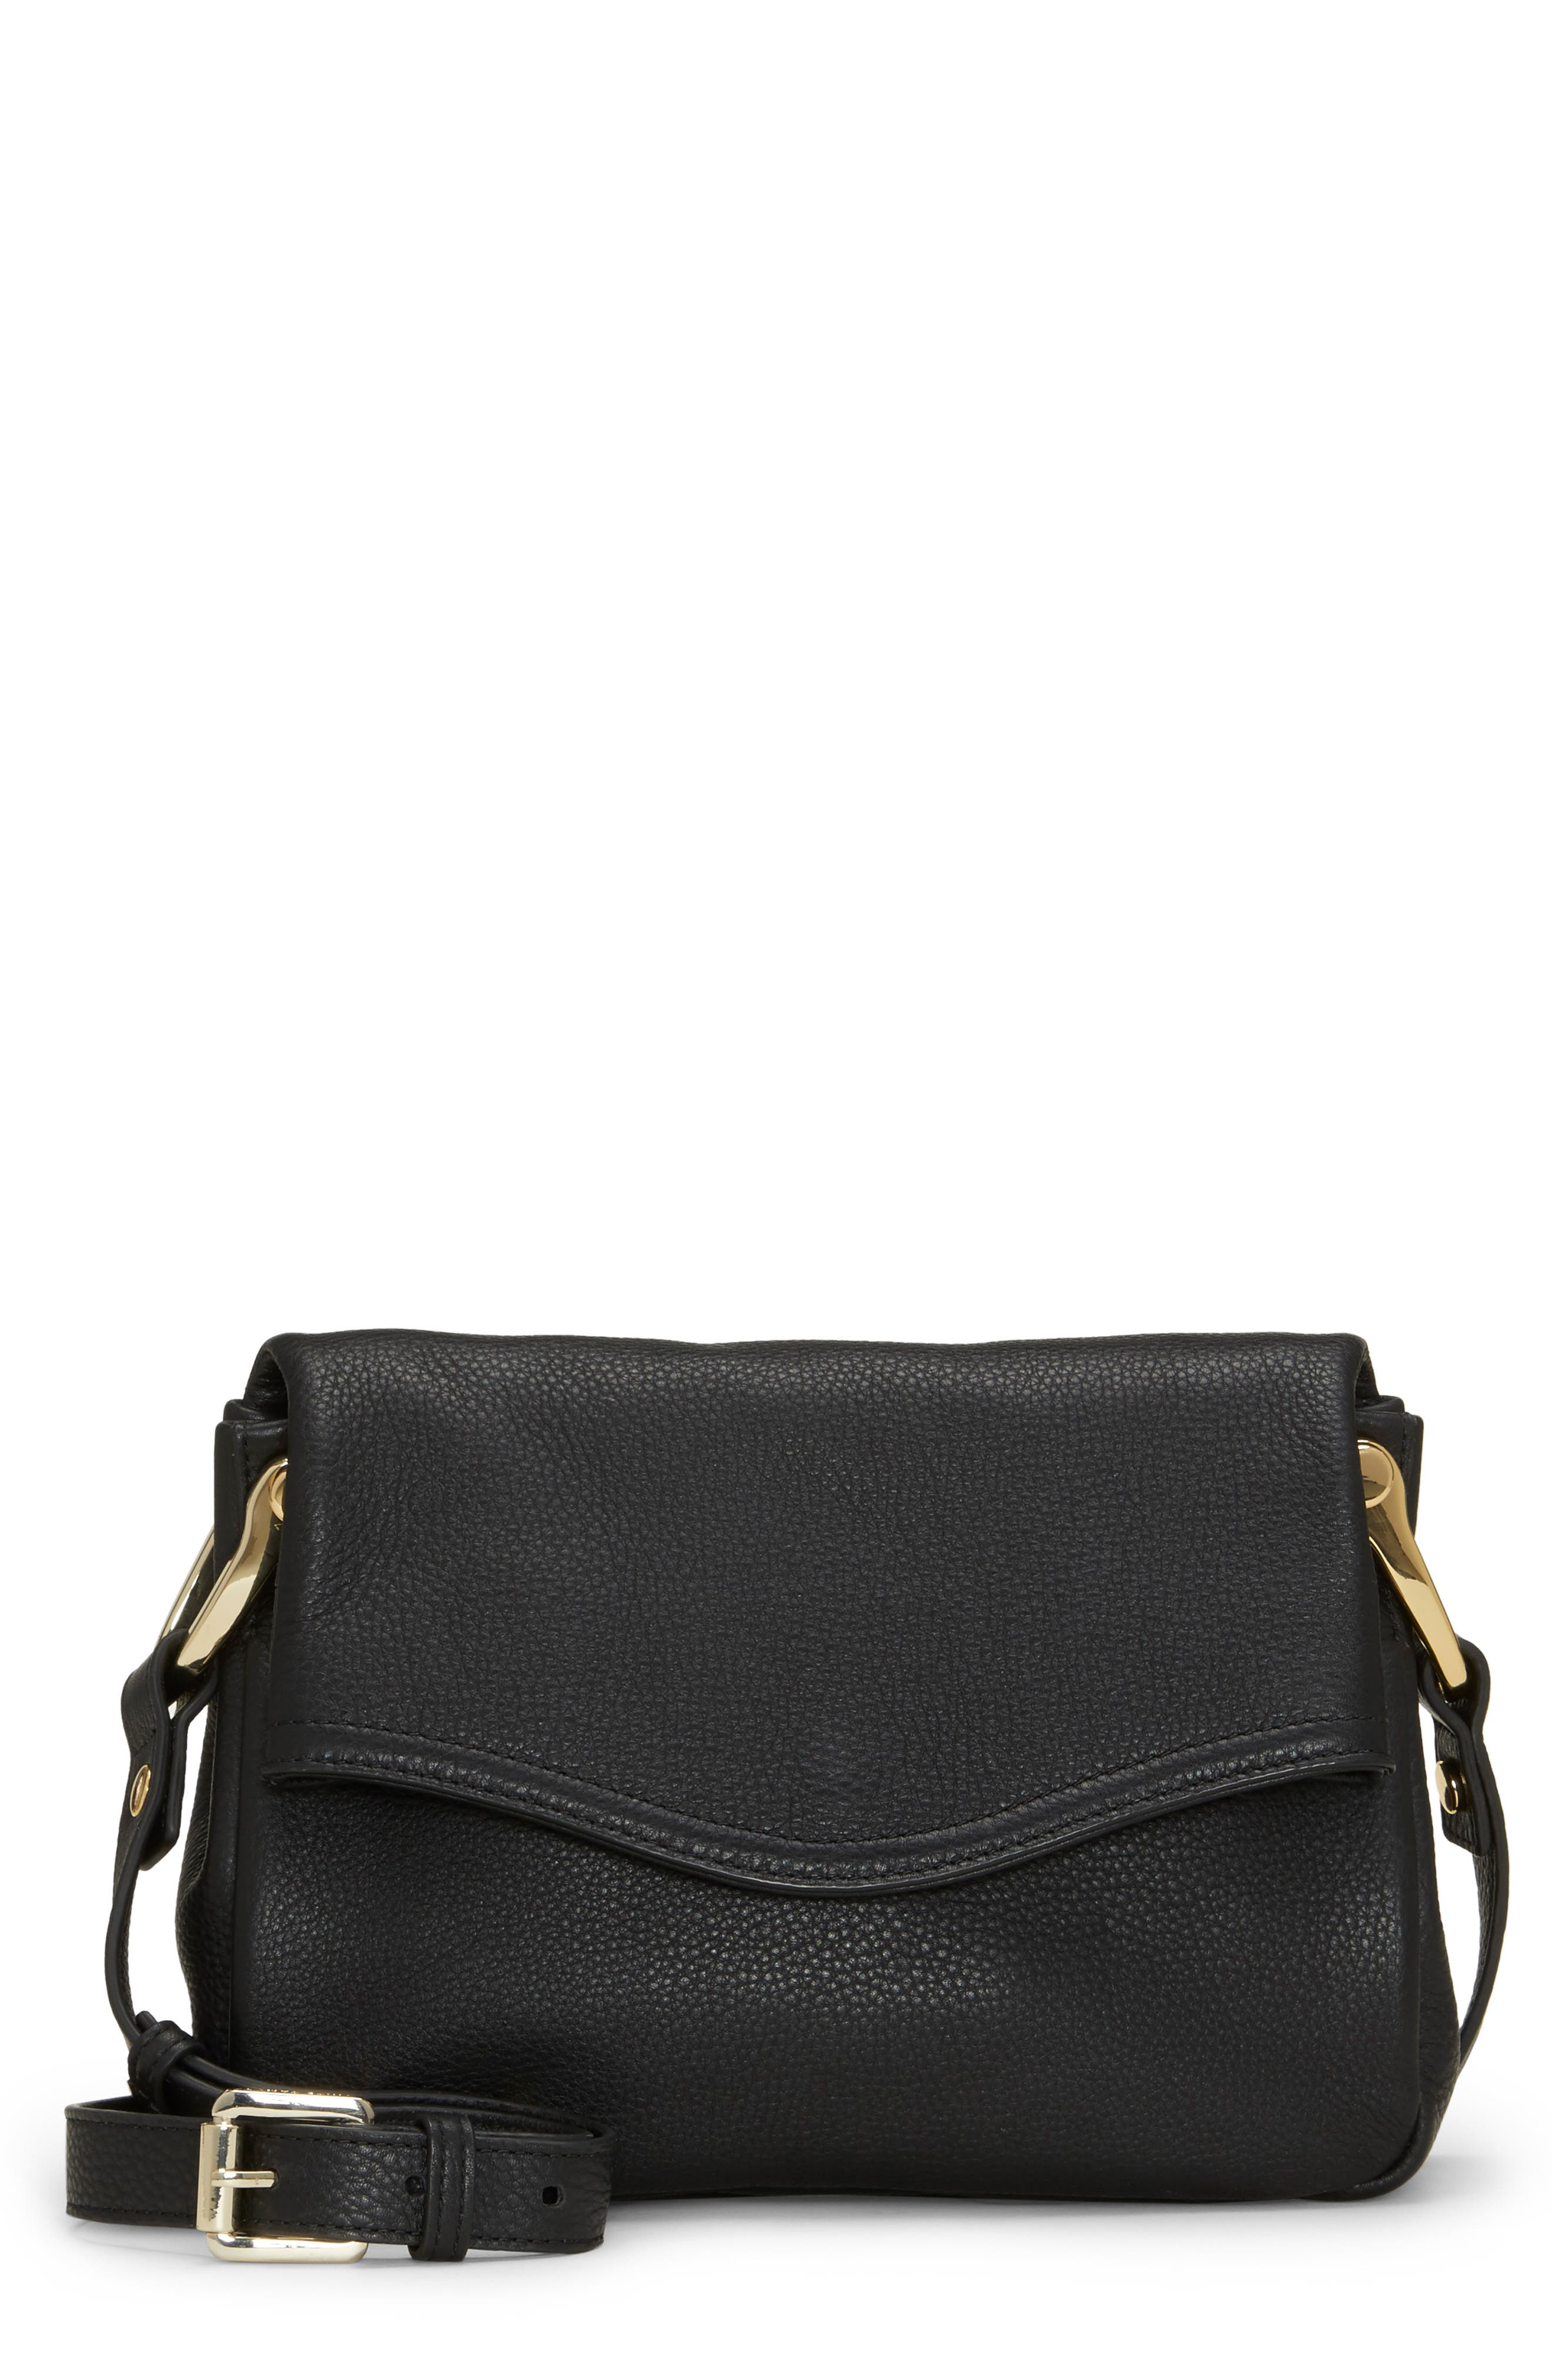 VINCE CAMUTO Clem Leather Crossbody Bag, Main, color, 001